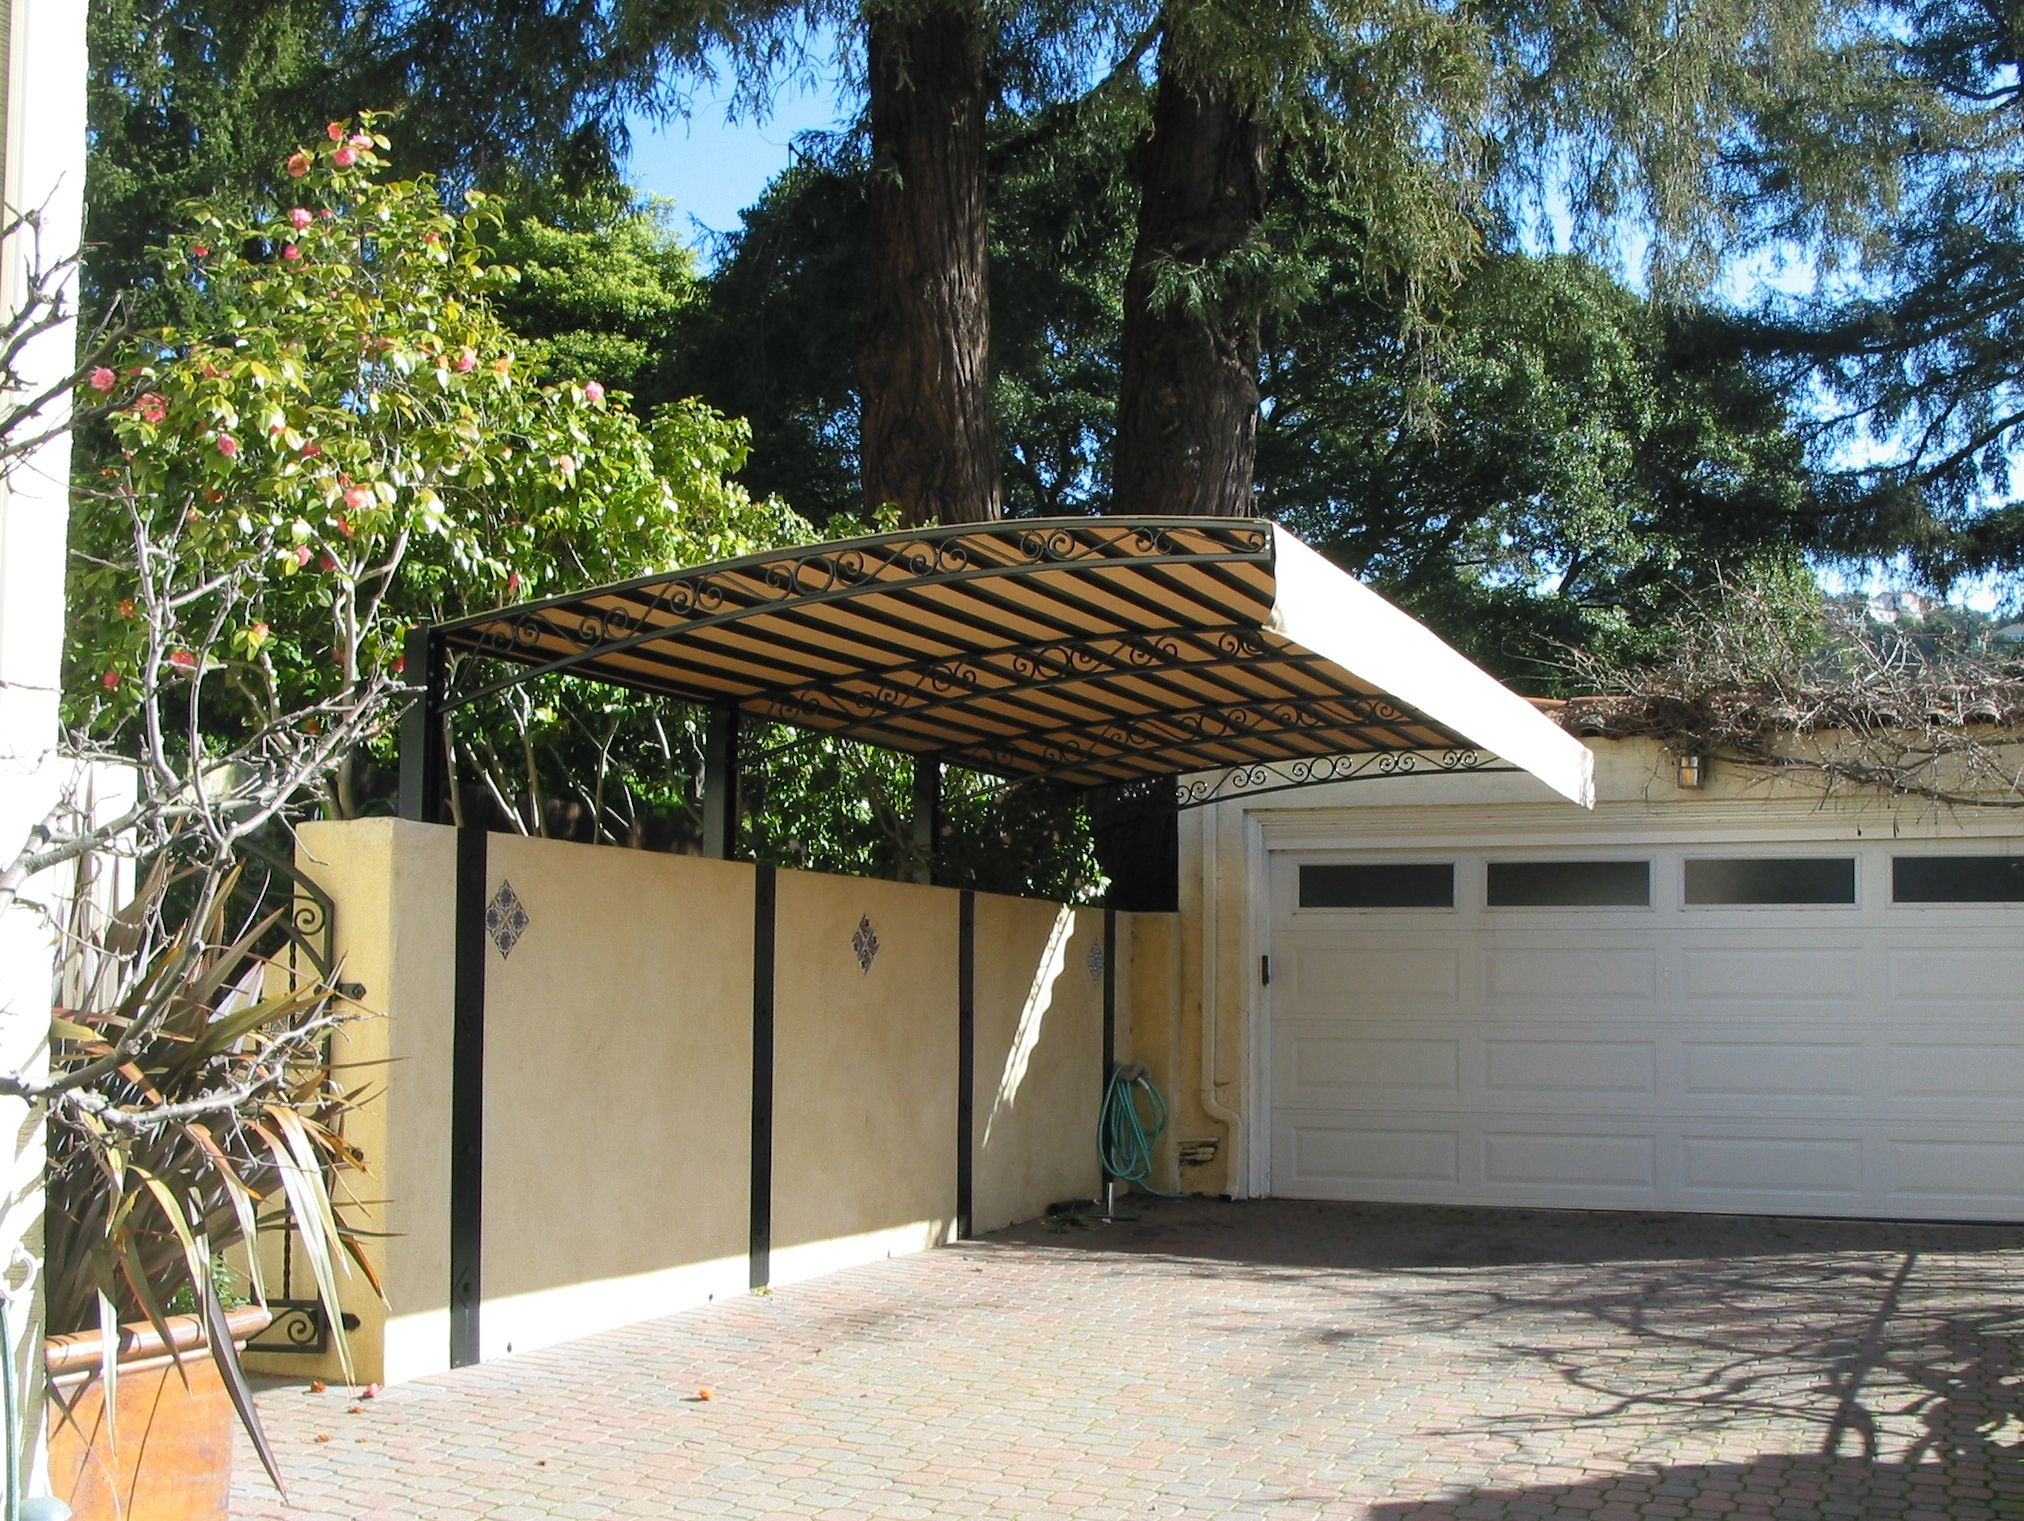 One Sided Overhang Carport Canopy Outdoor Privacy Fence - Metal Overhang Carport